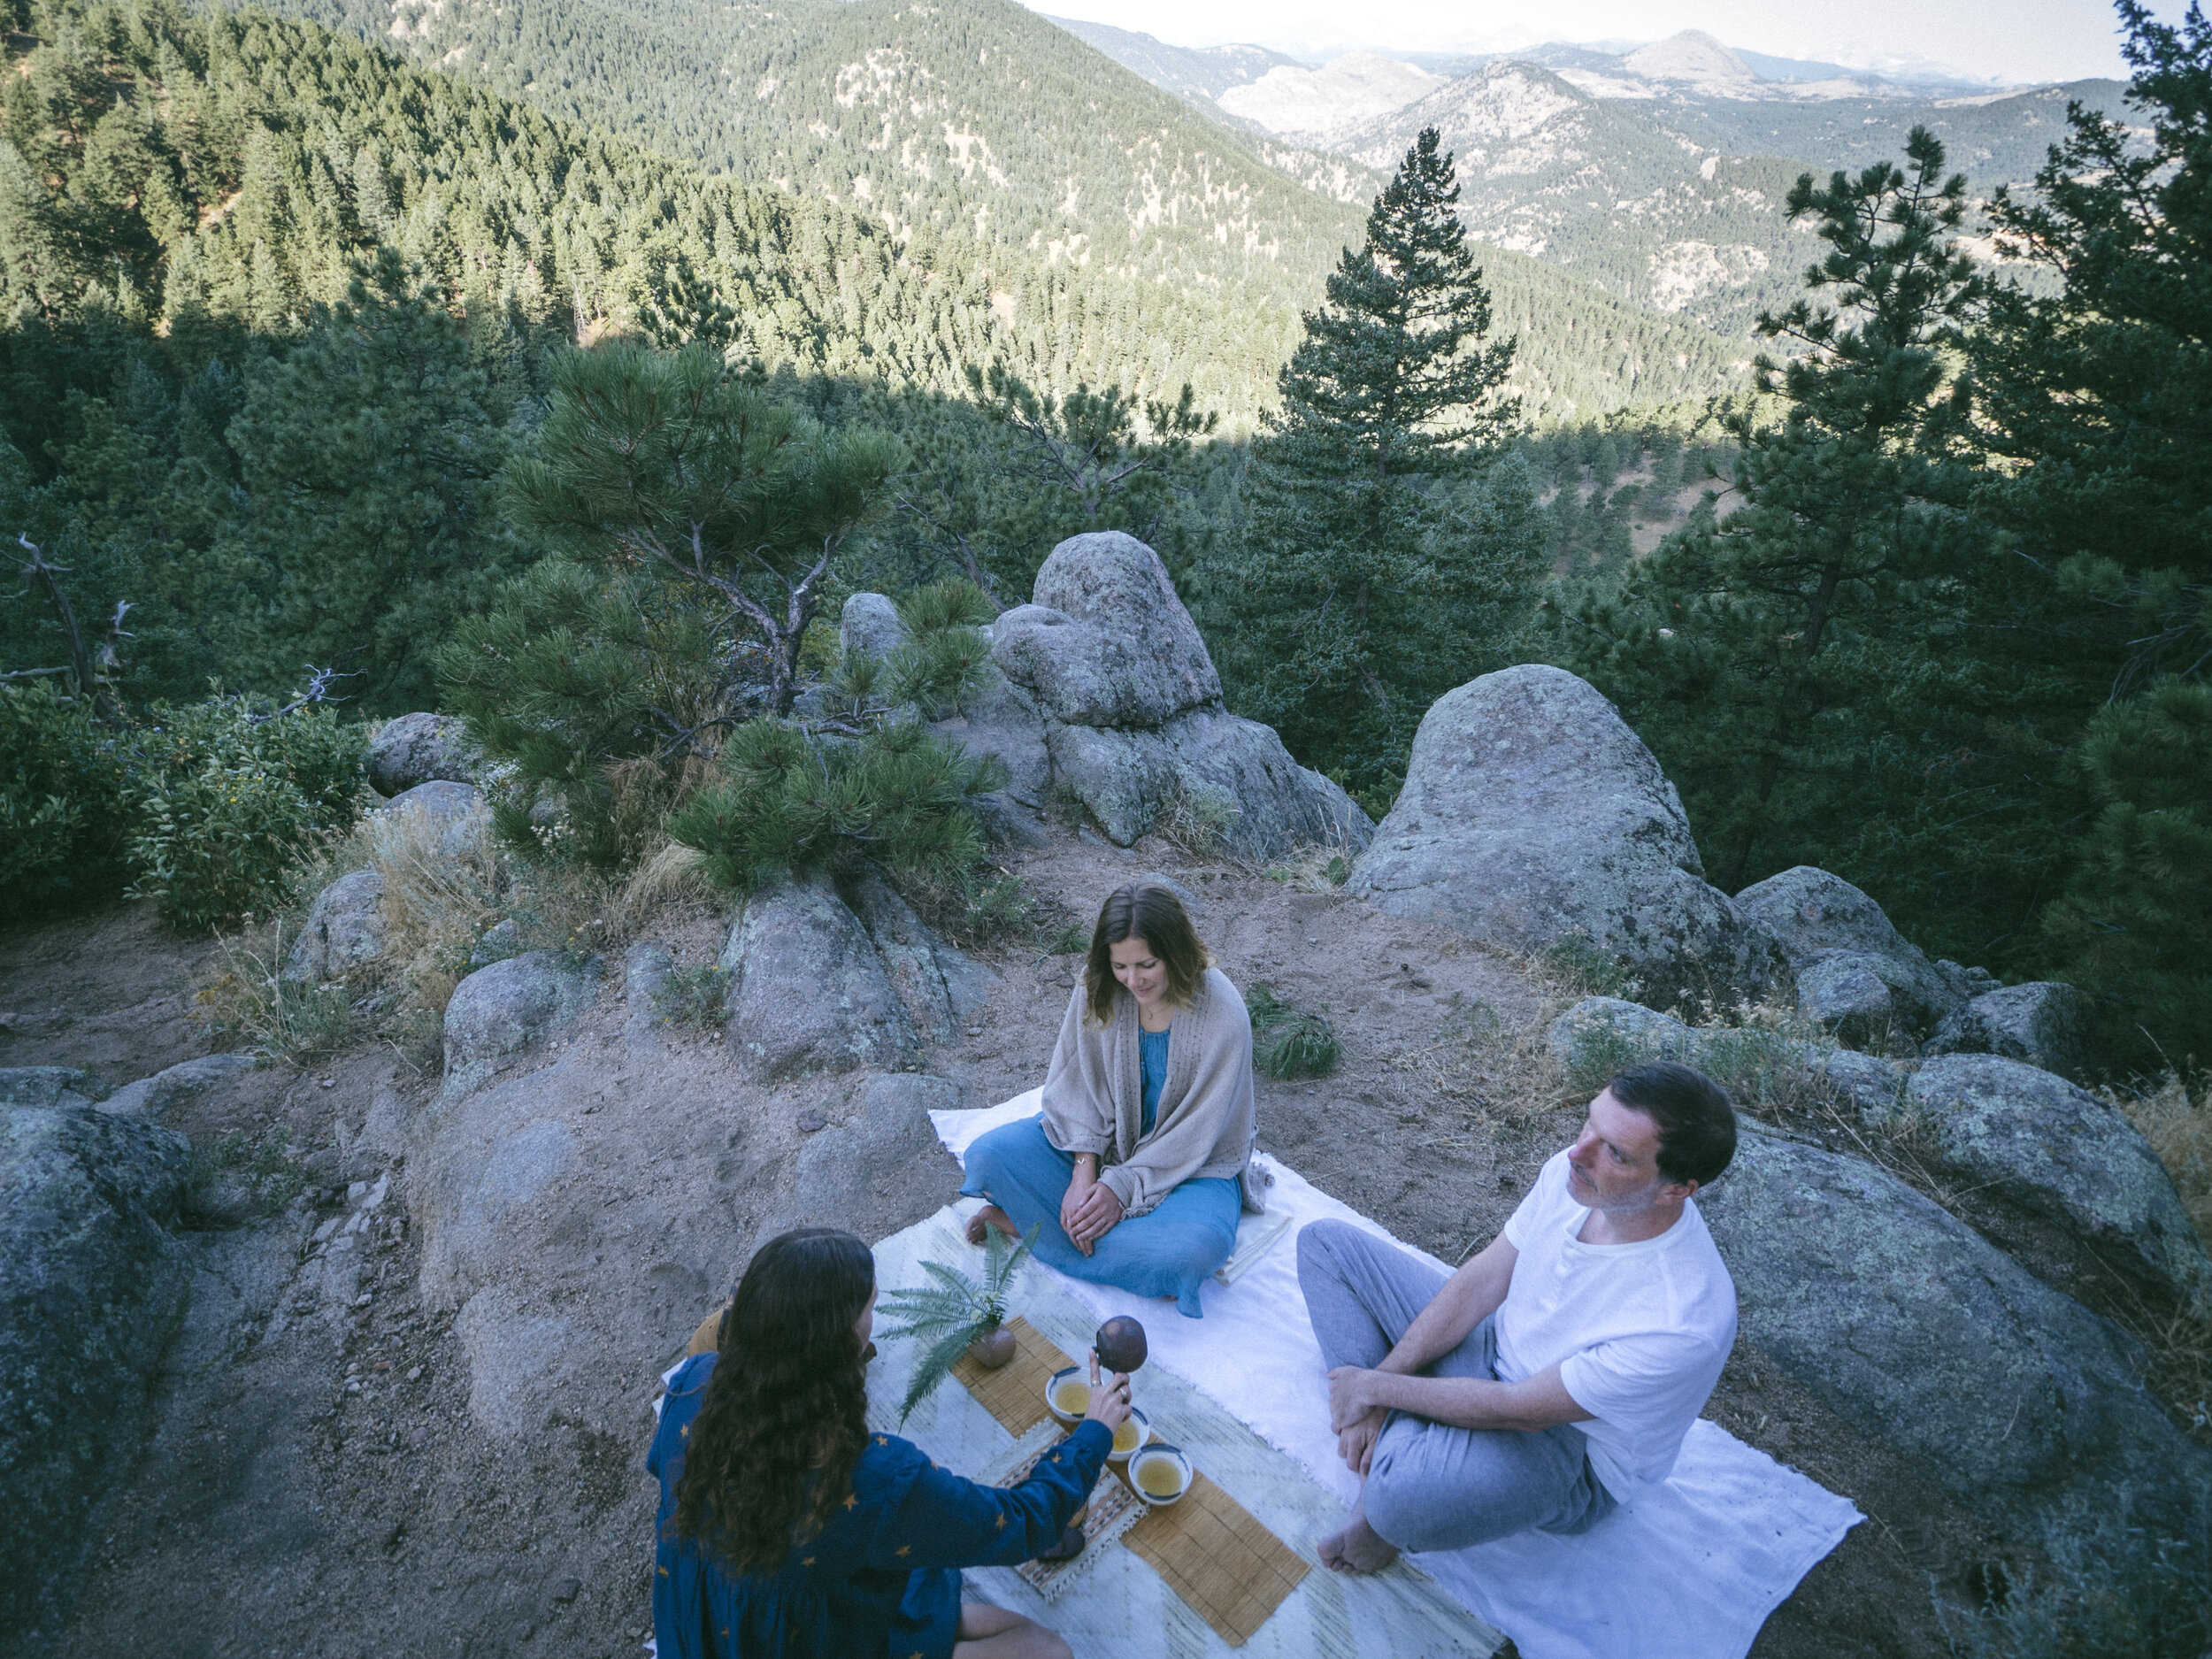 Wednesday Mornings - Boulder, Colorado8:00-10:30amJoin me as we hike into a remote location to enjoy beautiful bowls of tea!